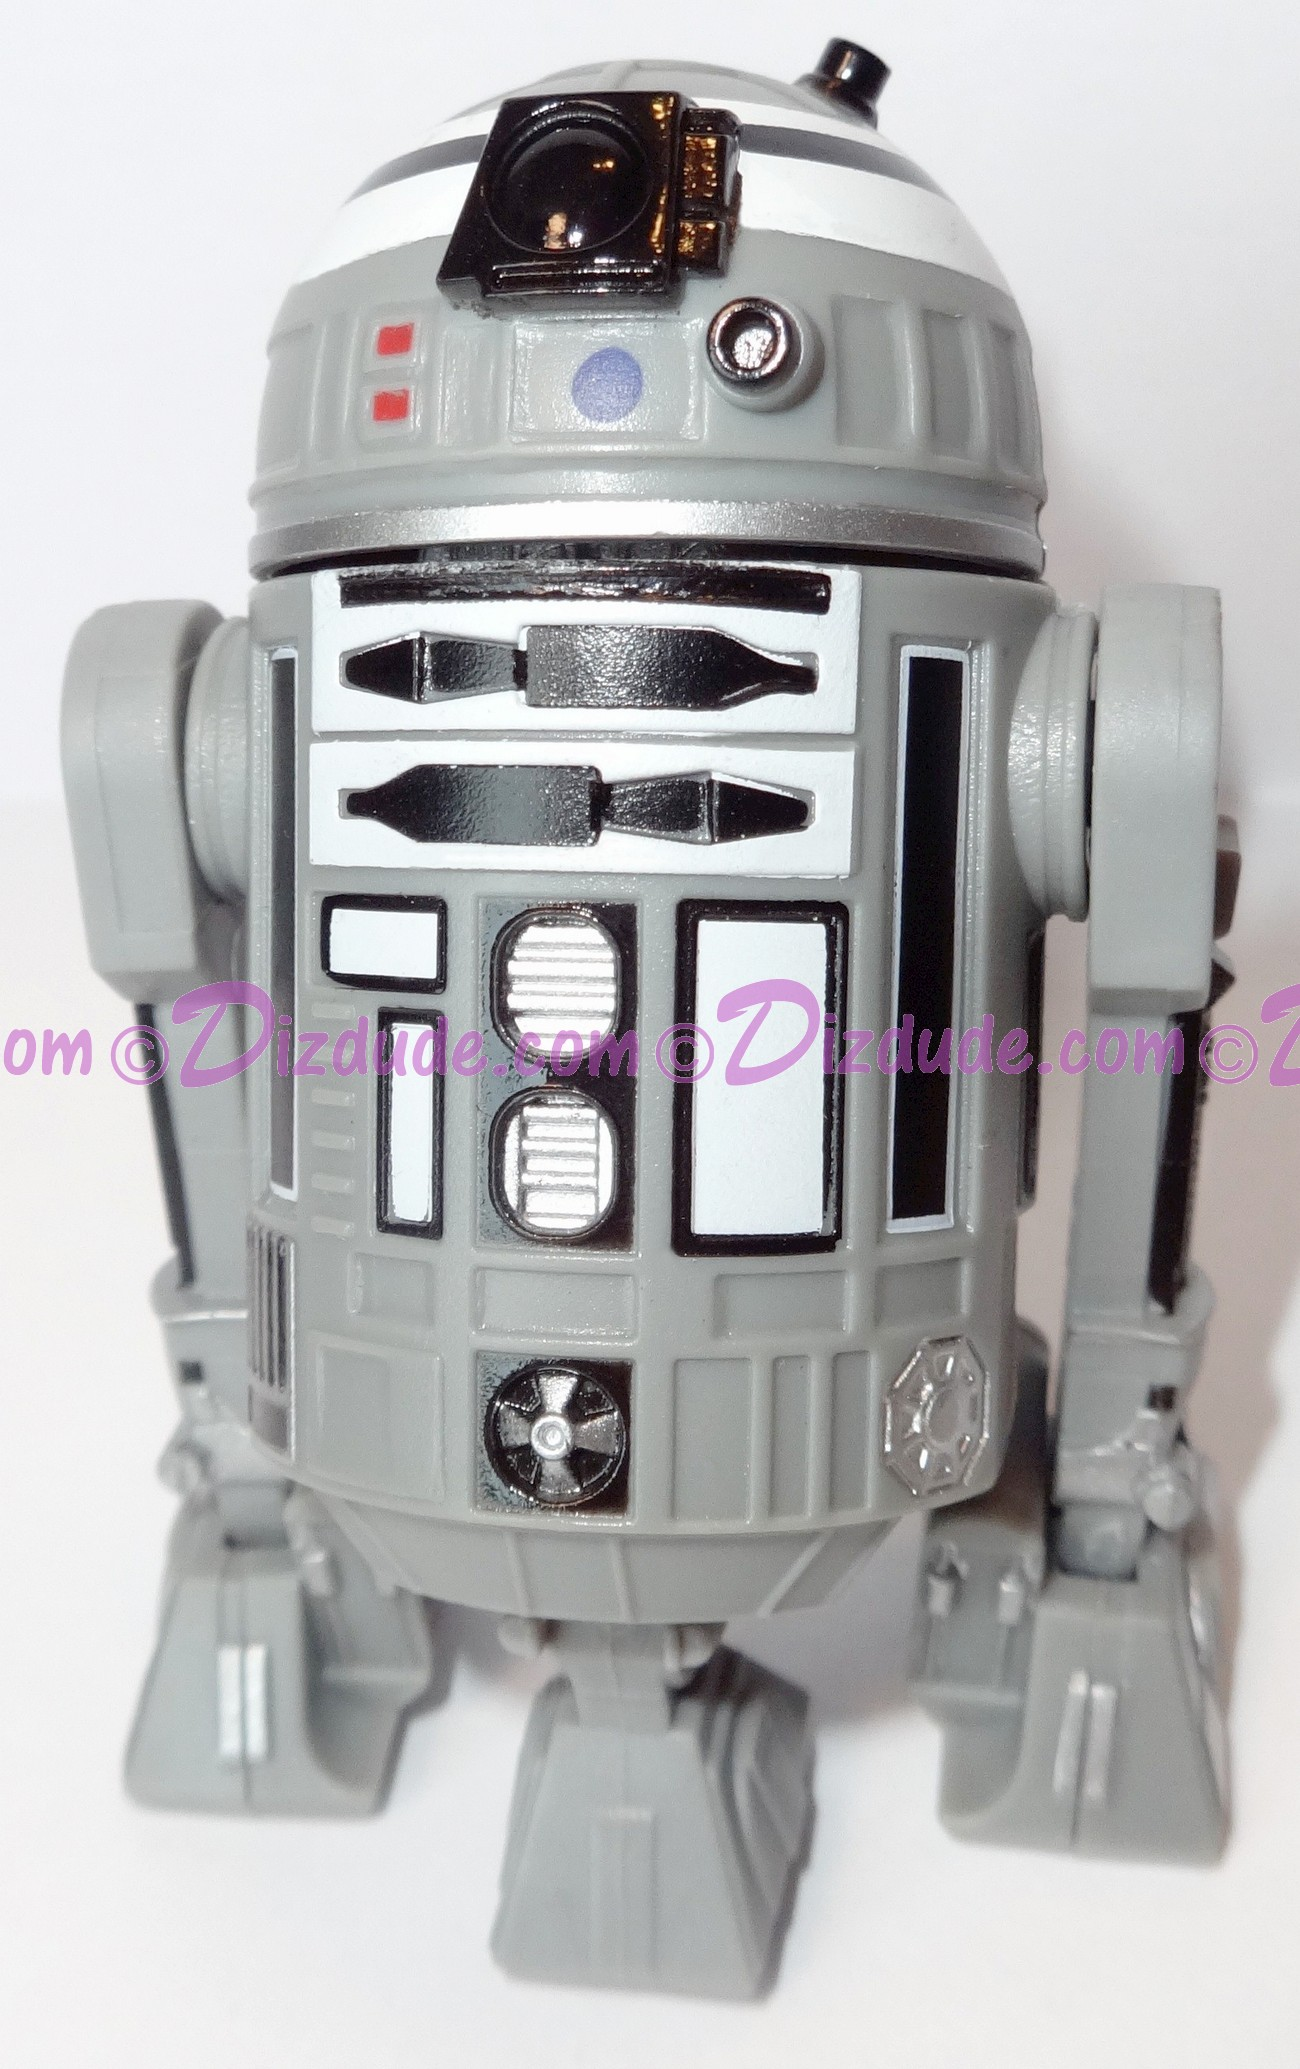 Gray & Black Astromech Droid ~ Pick-A-Hat ~ Series 2 from Disney Star Wars Build-A-Droid Factory © Dizdude.com